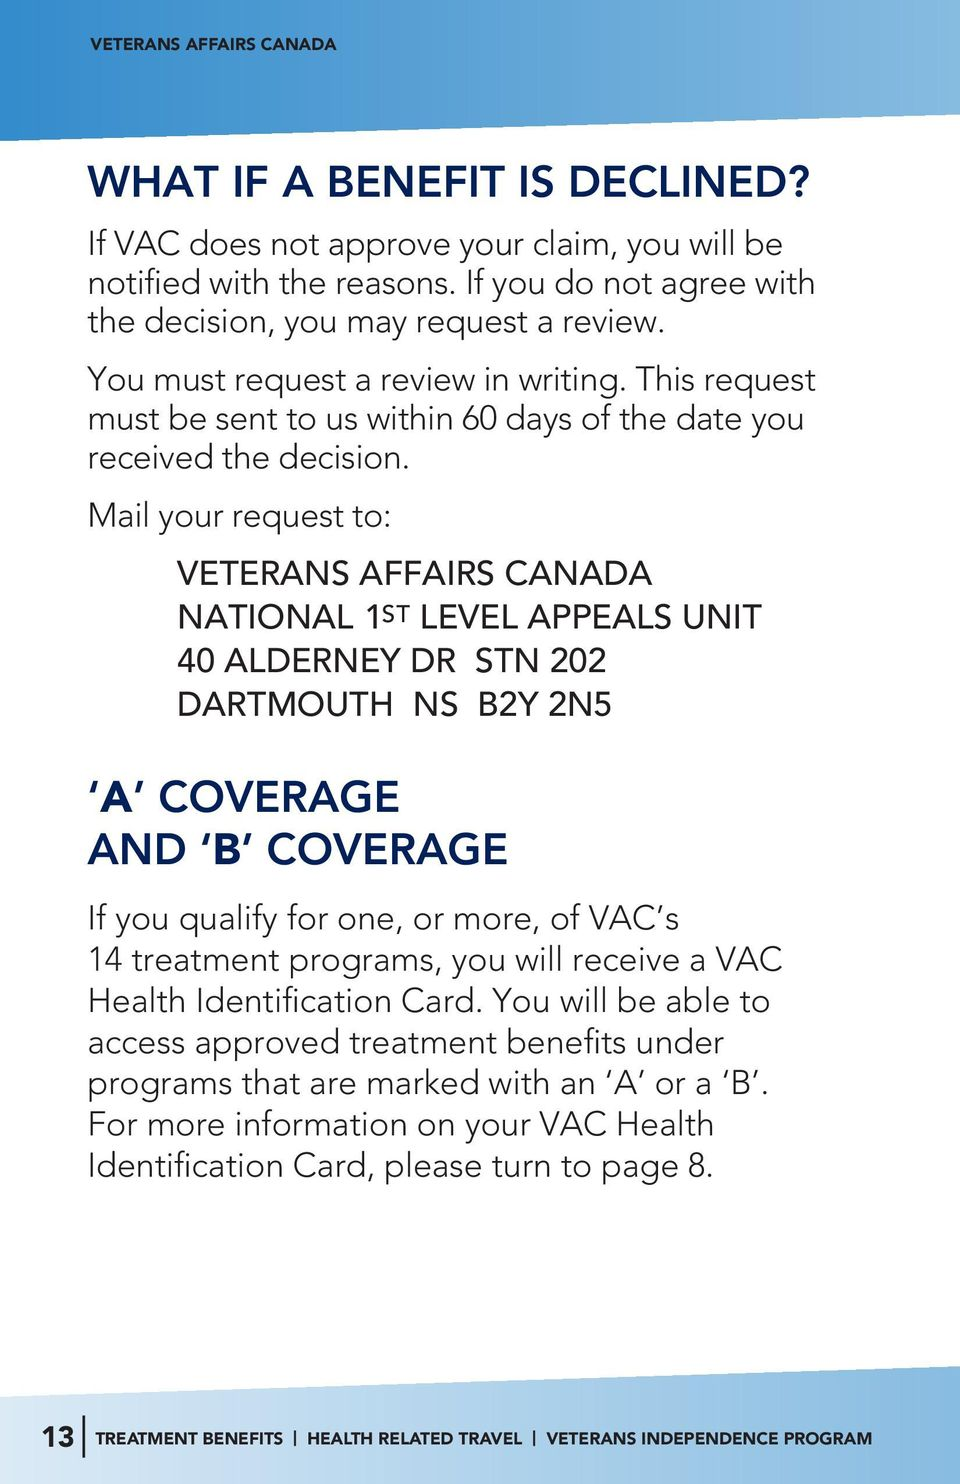 Mail your request to: VETERANS AFFAIRS CANADA NATIONAL 1 ST LEVEL APPEALS UNIT 40 ALDERNEY DR STN 202 DARTMOUTH NS B2Y 2N5 A COVERAGE AND B COVERAGE If you qualify for one, or more, of